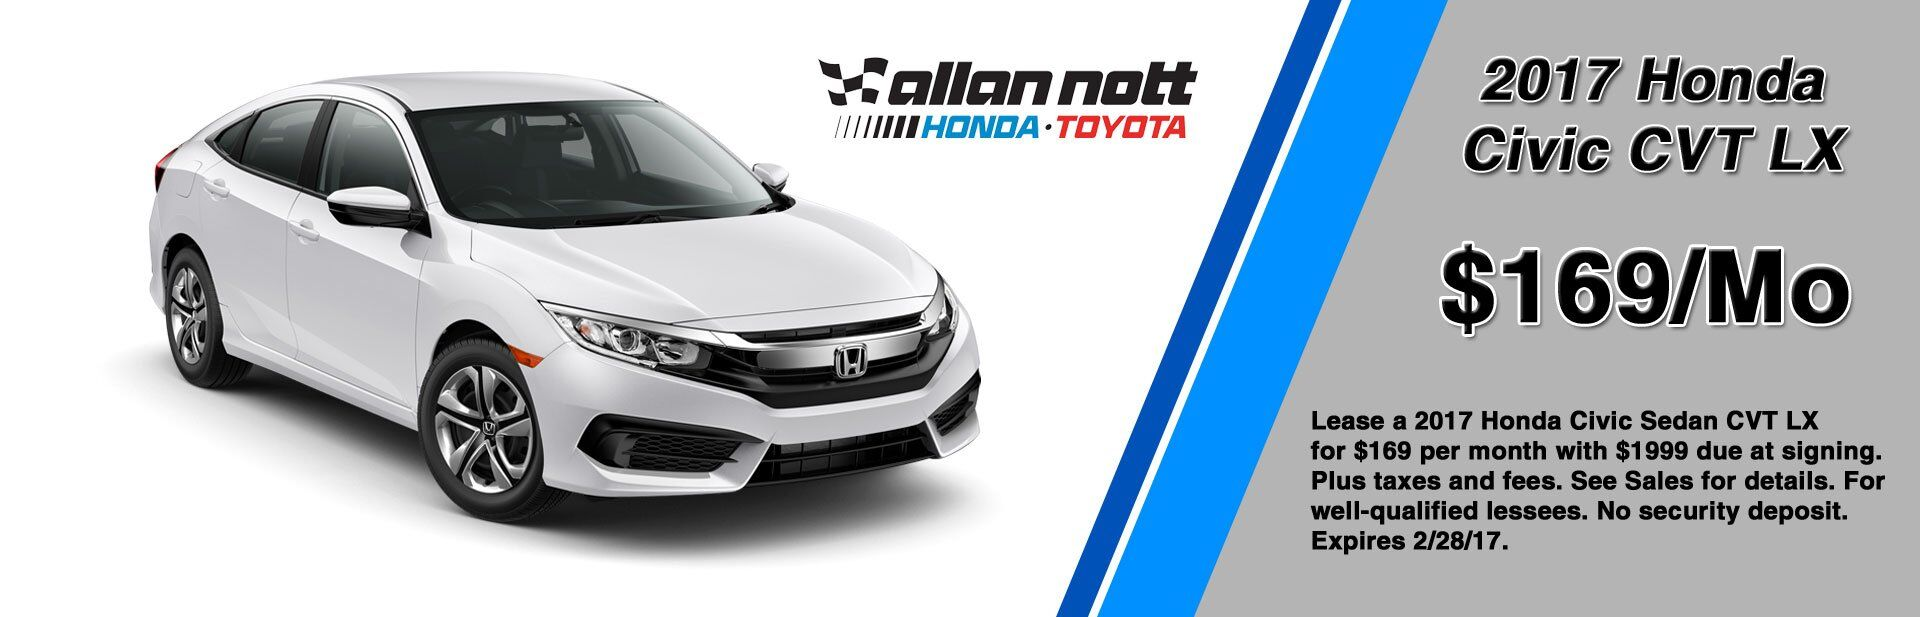 2017 Honda Civic Sedan CVT LX